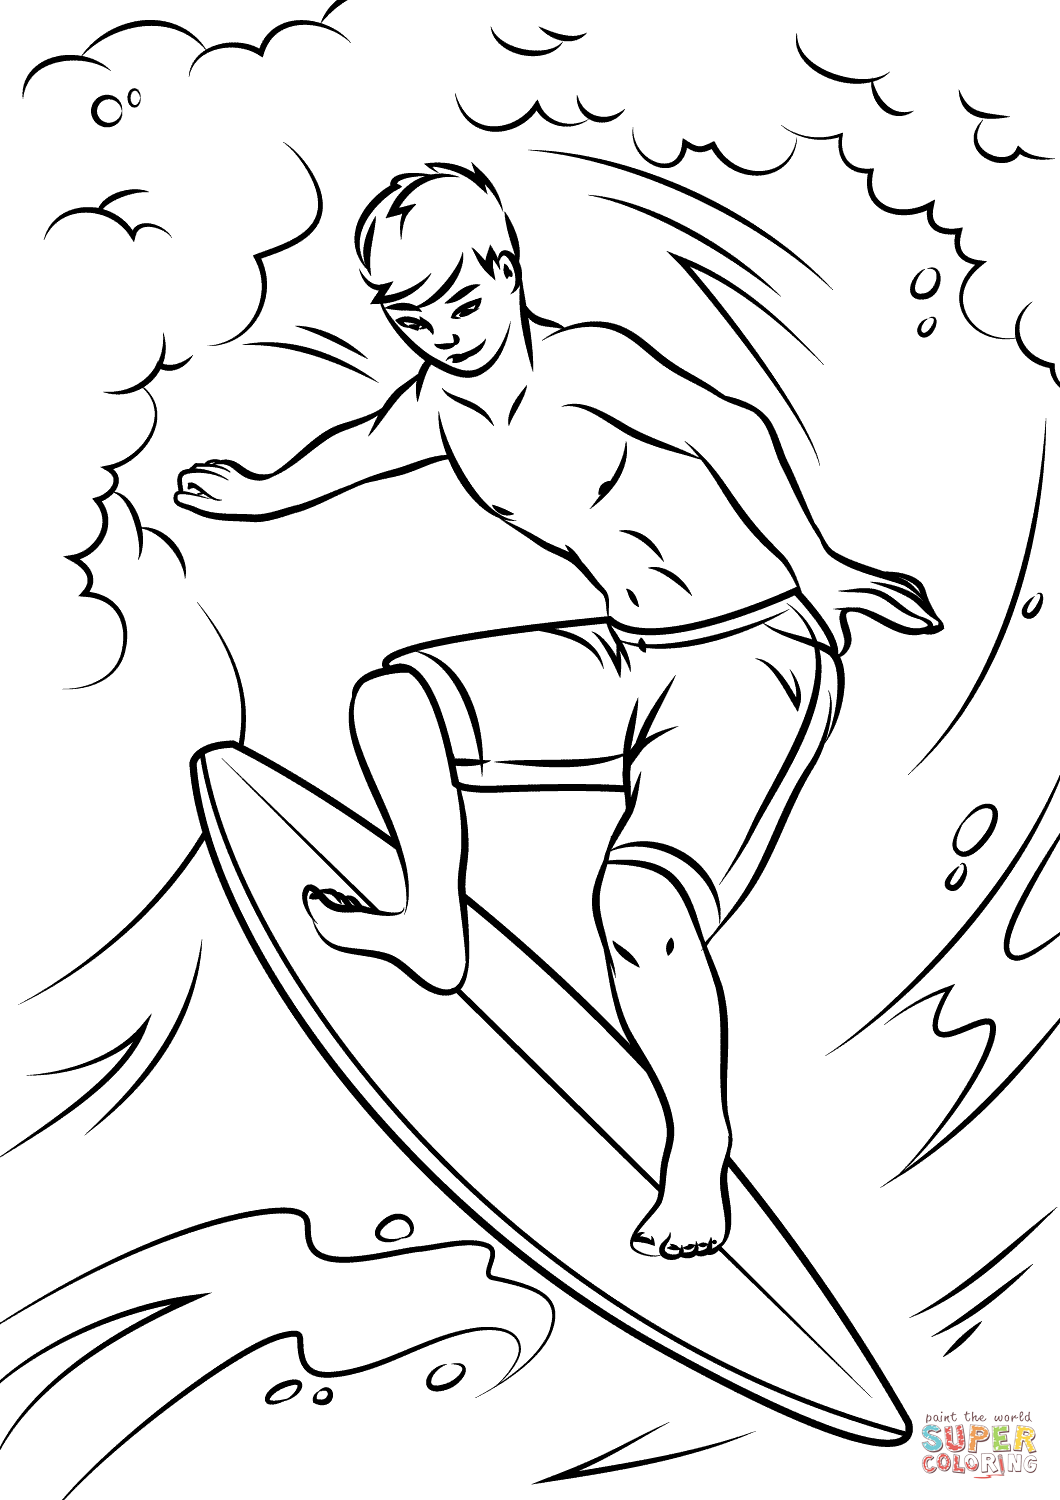 Cool Surfer Coloring Page